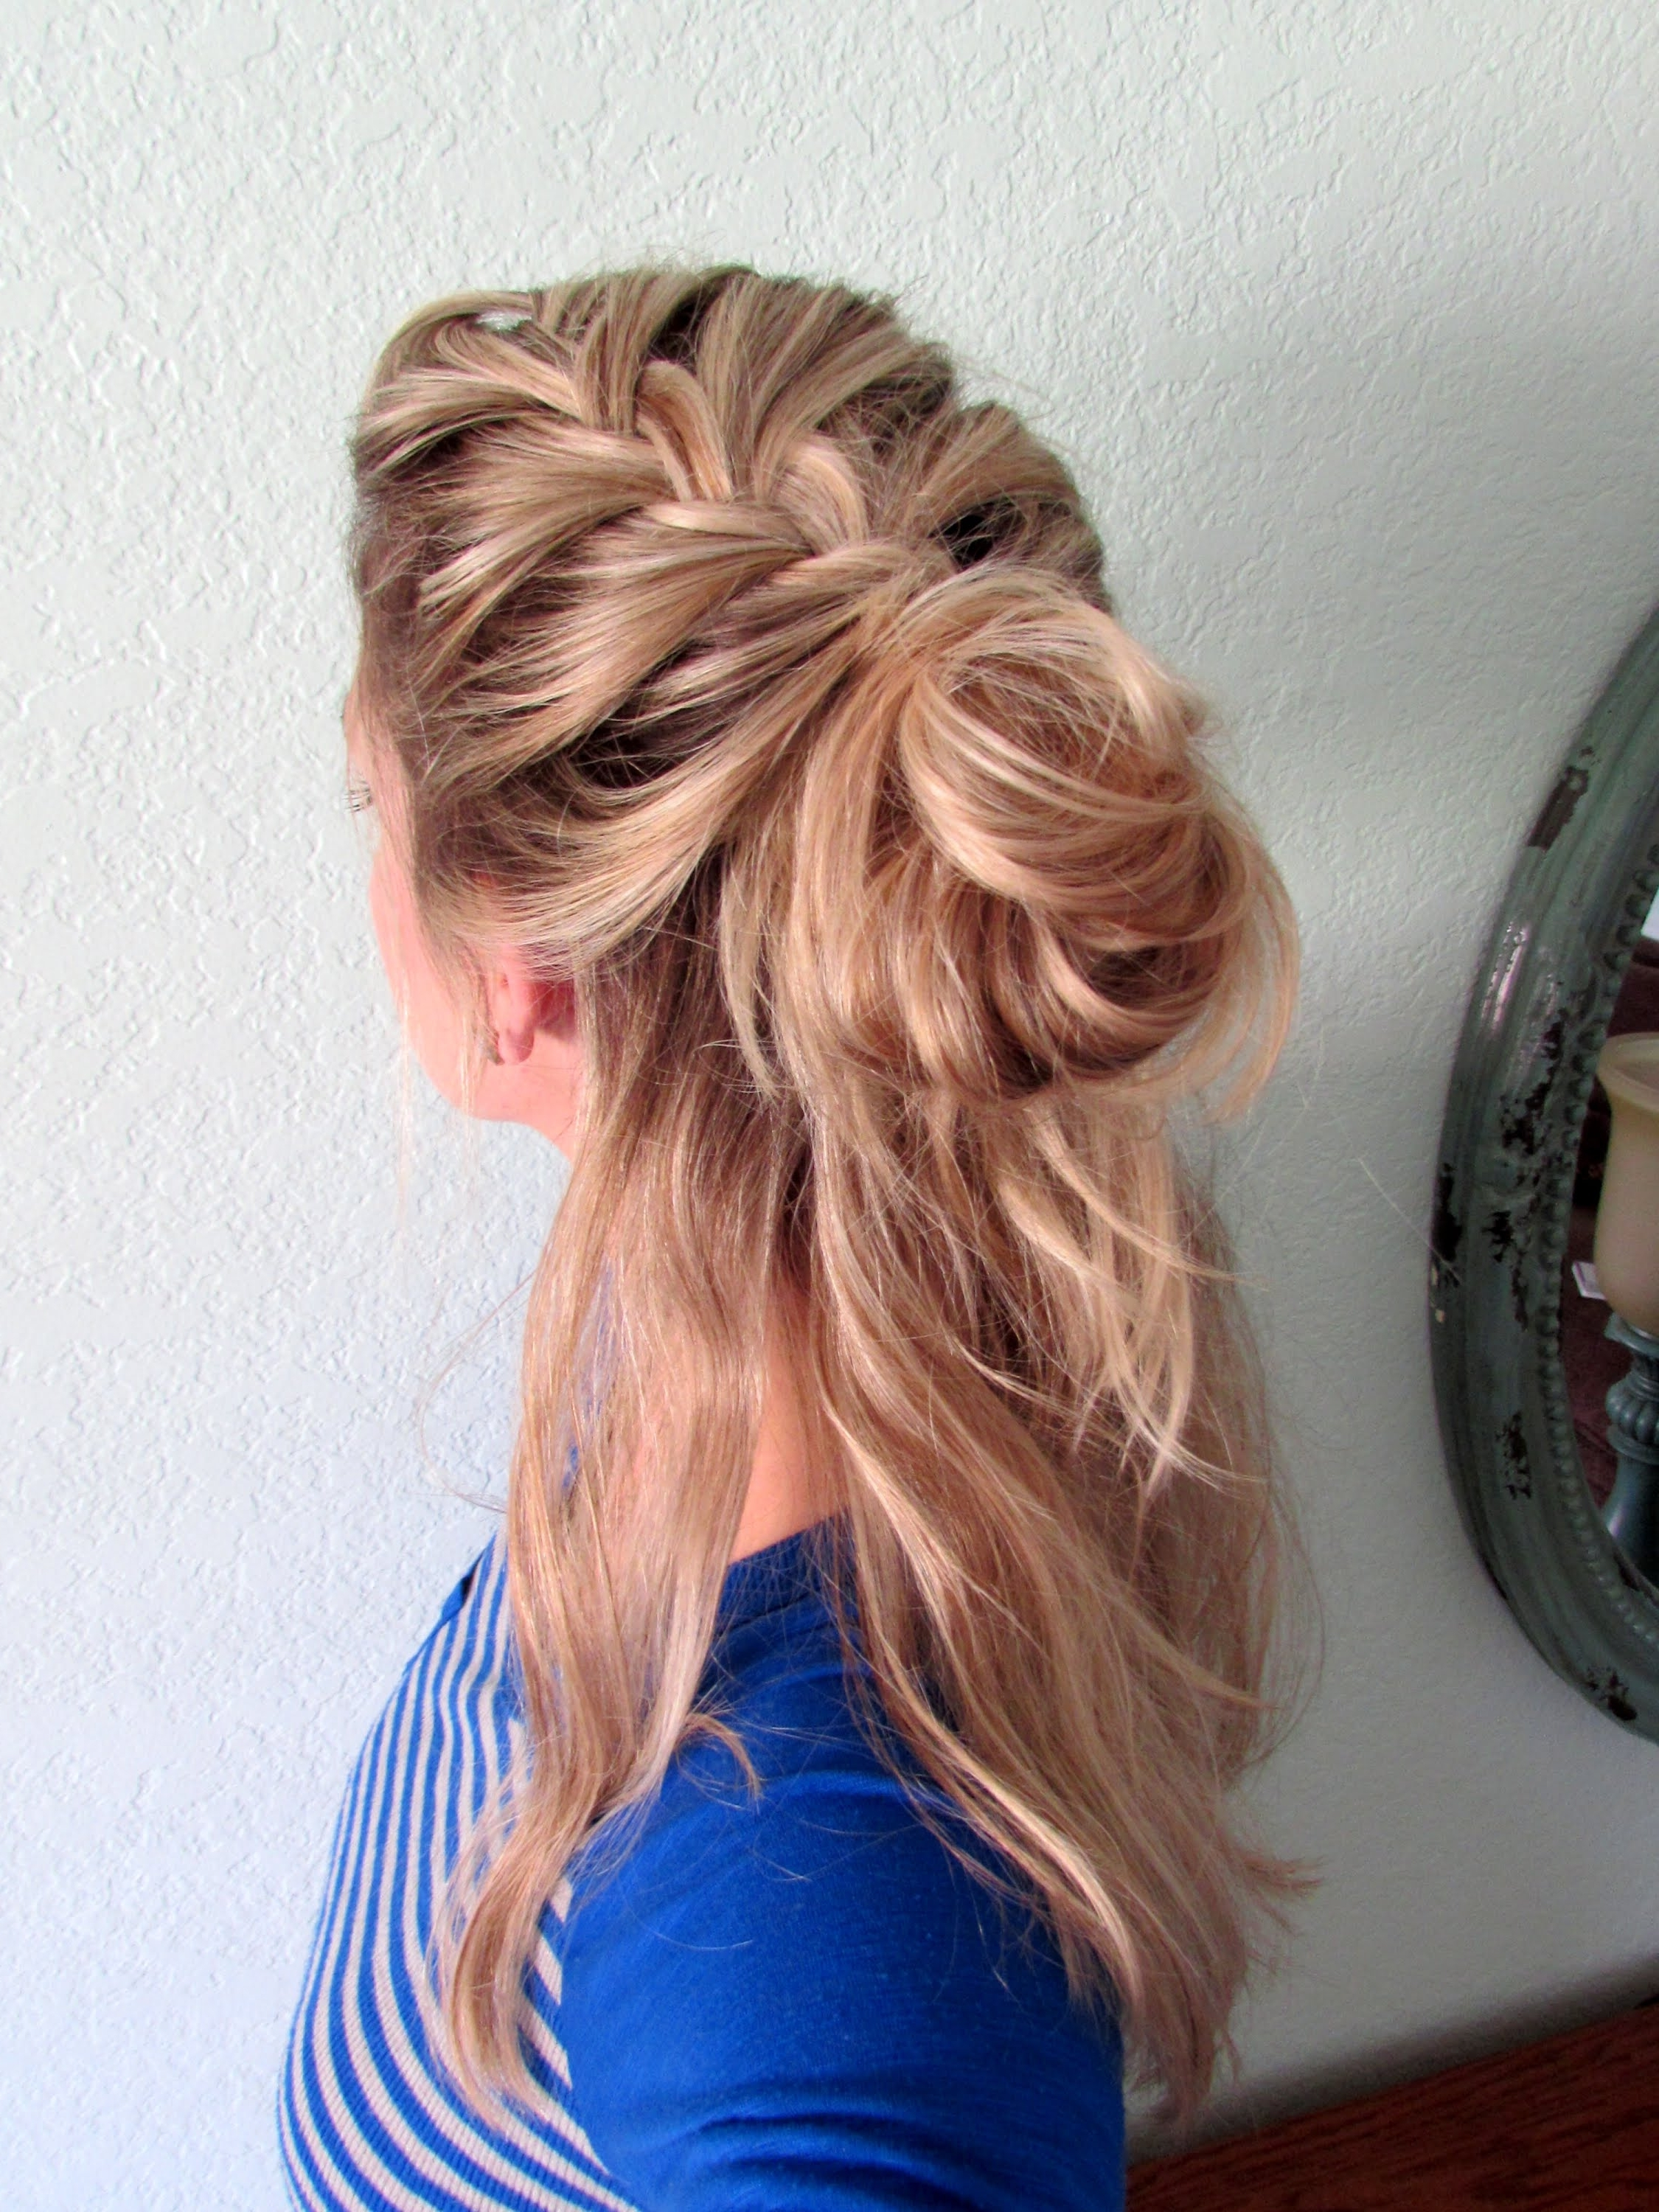 How To: Half Up French Braid  Messy Bun – Youtube Inside Most Up To Date Messy Bun With French Braids (View 10 of 15)